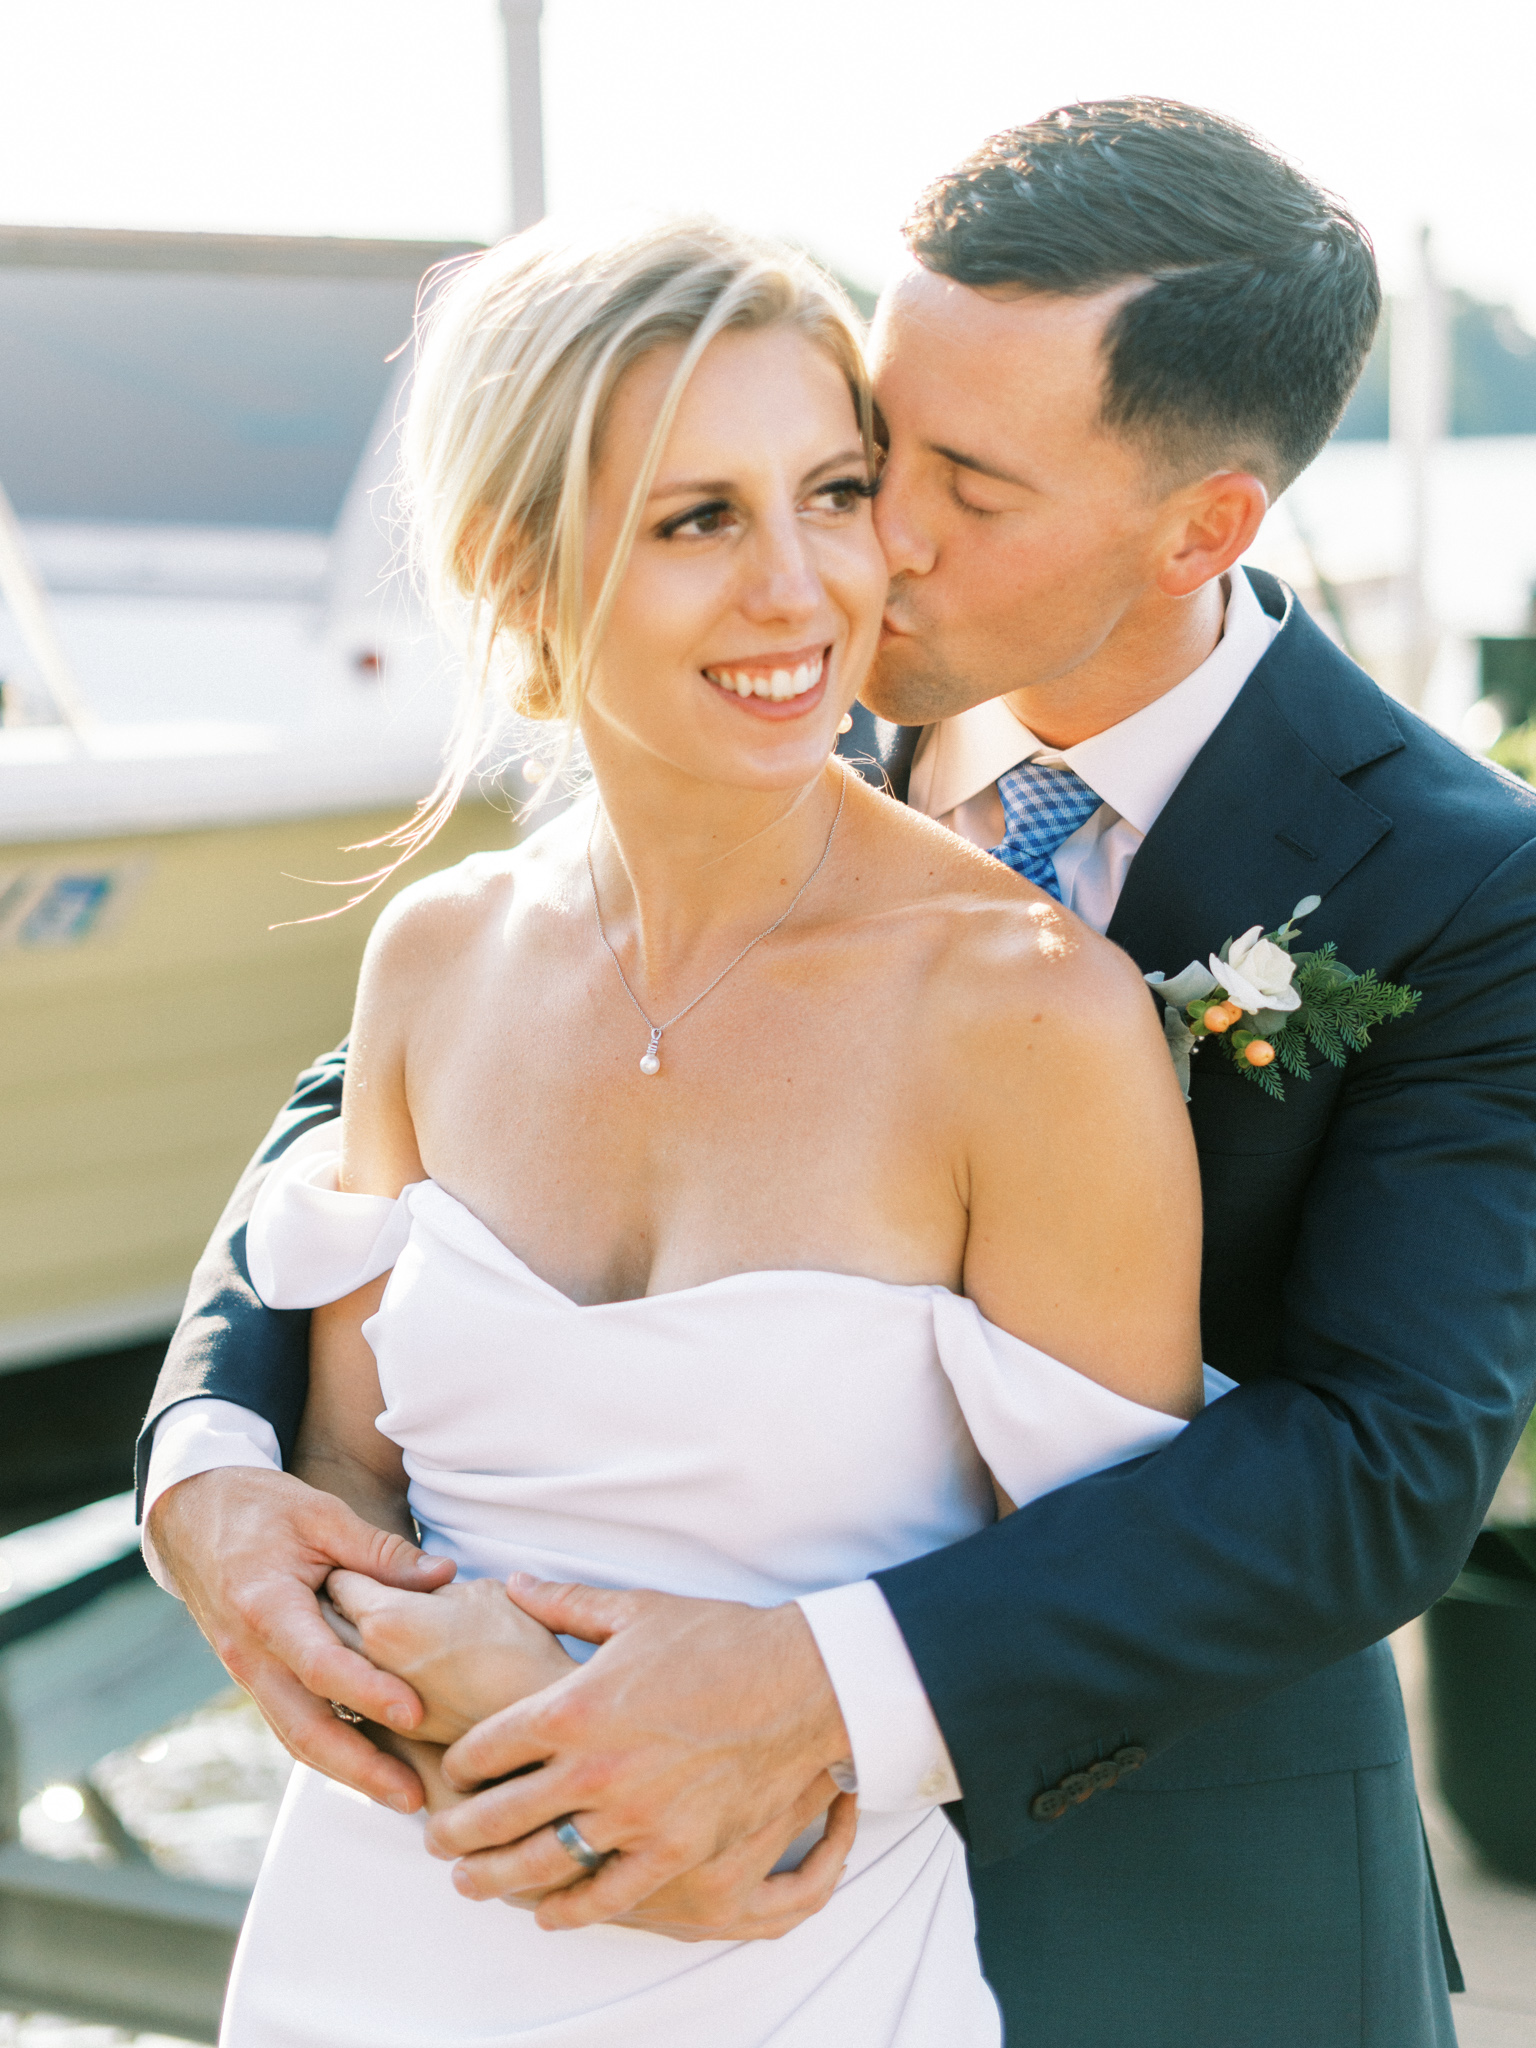 Gray_Joiner_e. losinio photography_annapolis-maryland-waterfront-elopement-287